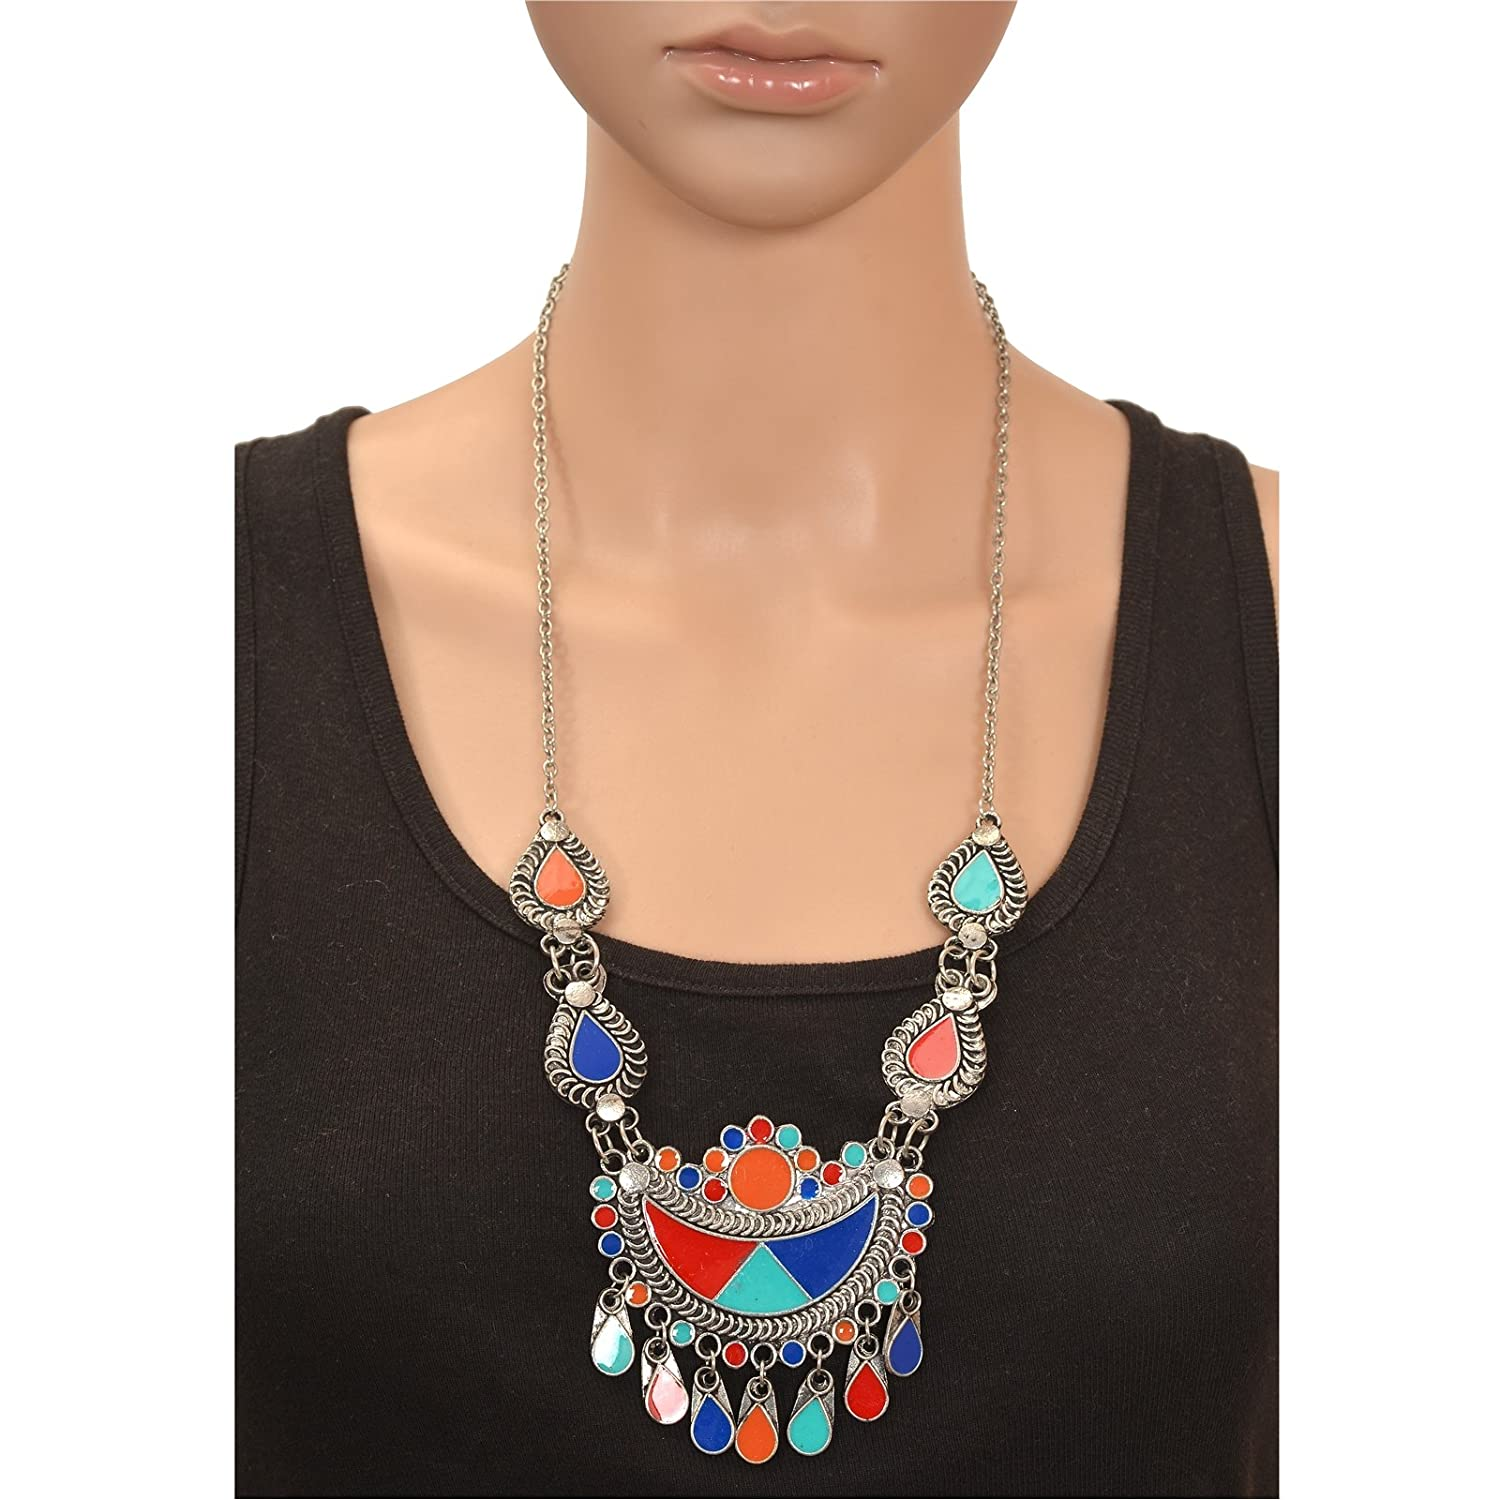 Color Lane Combo Afghani Oxidized Silver Jewelry Set and Necklace Enamel CO-1155